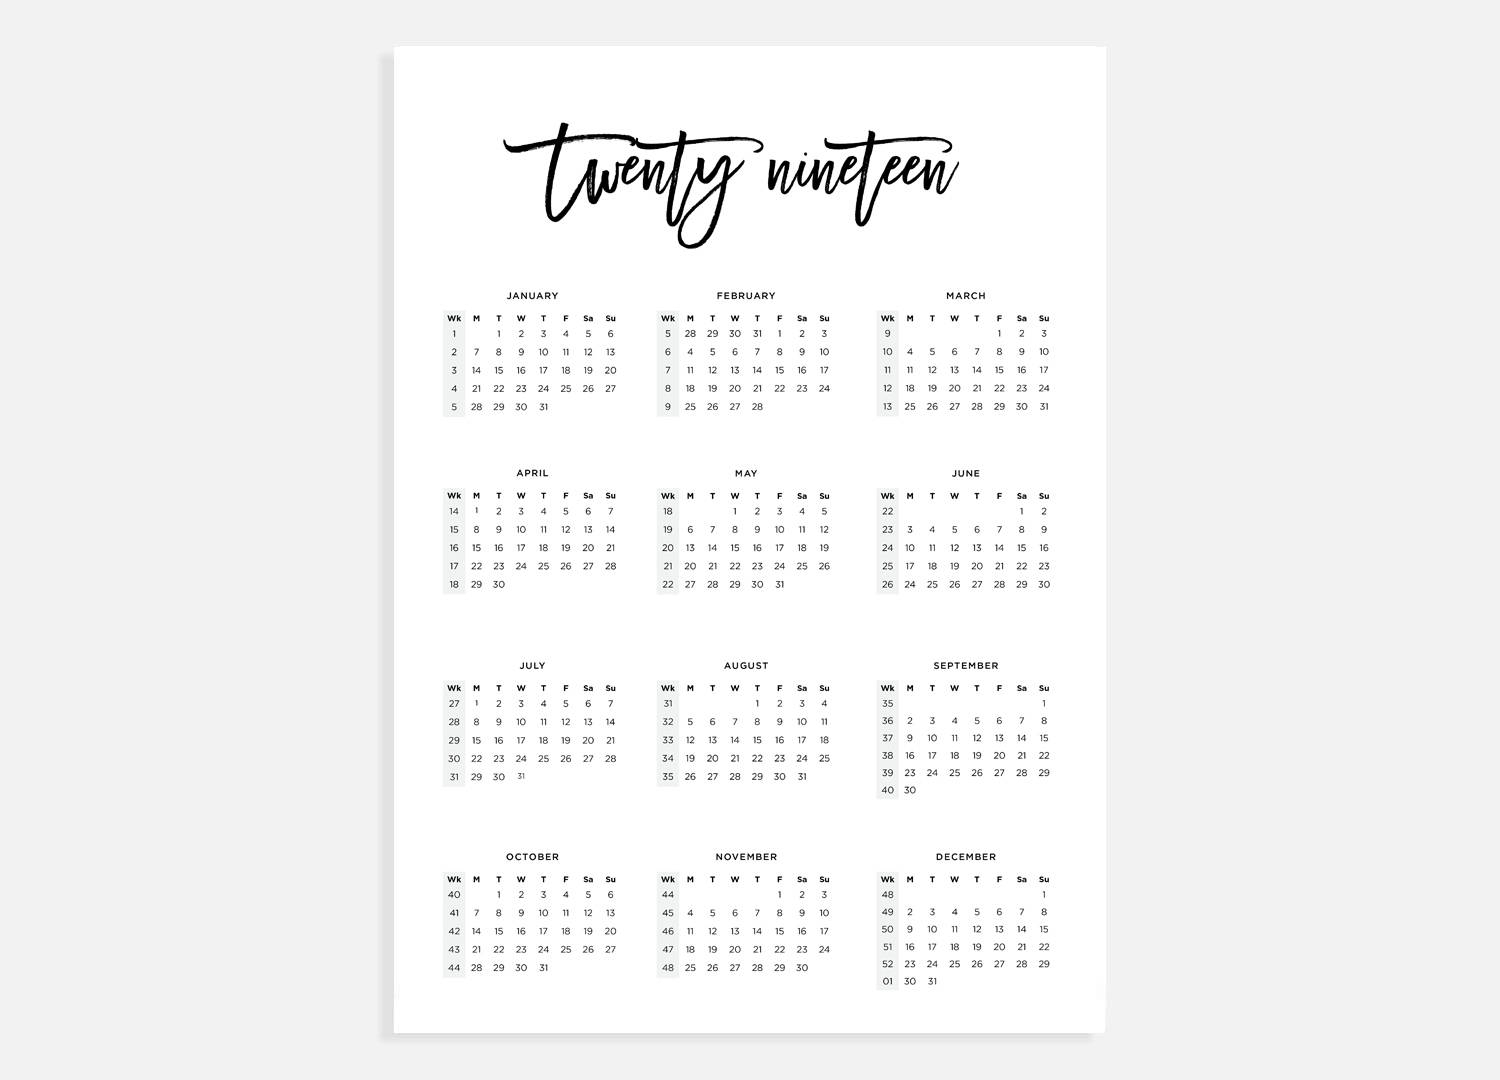 2019 Calendar A3 Calendar With Week Numbers 2019 Year | Etsy throughout Week Of The Year Number Calendar